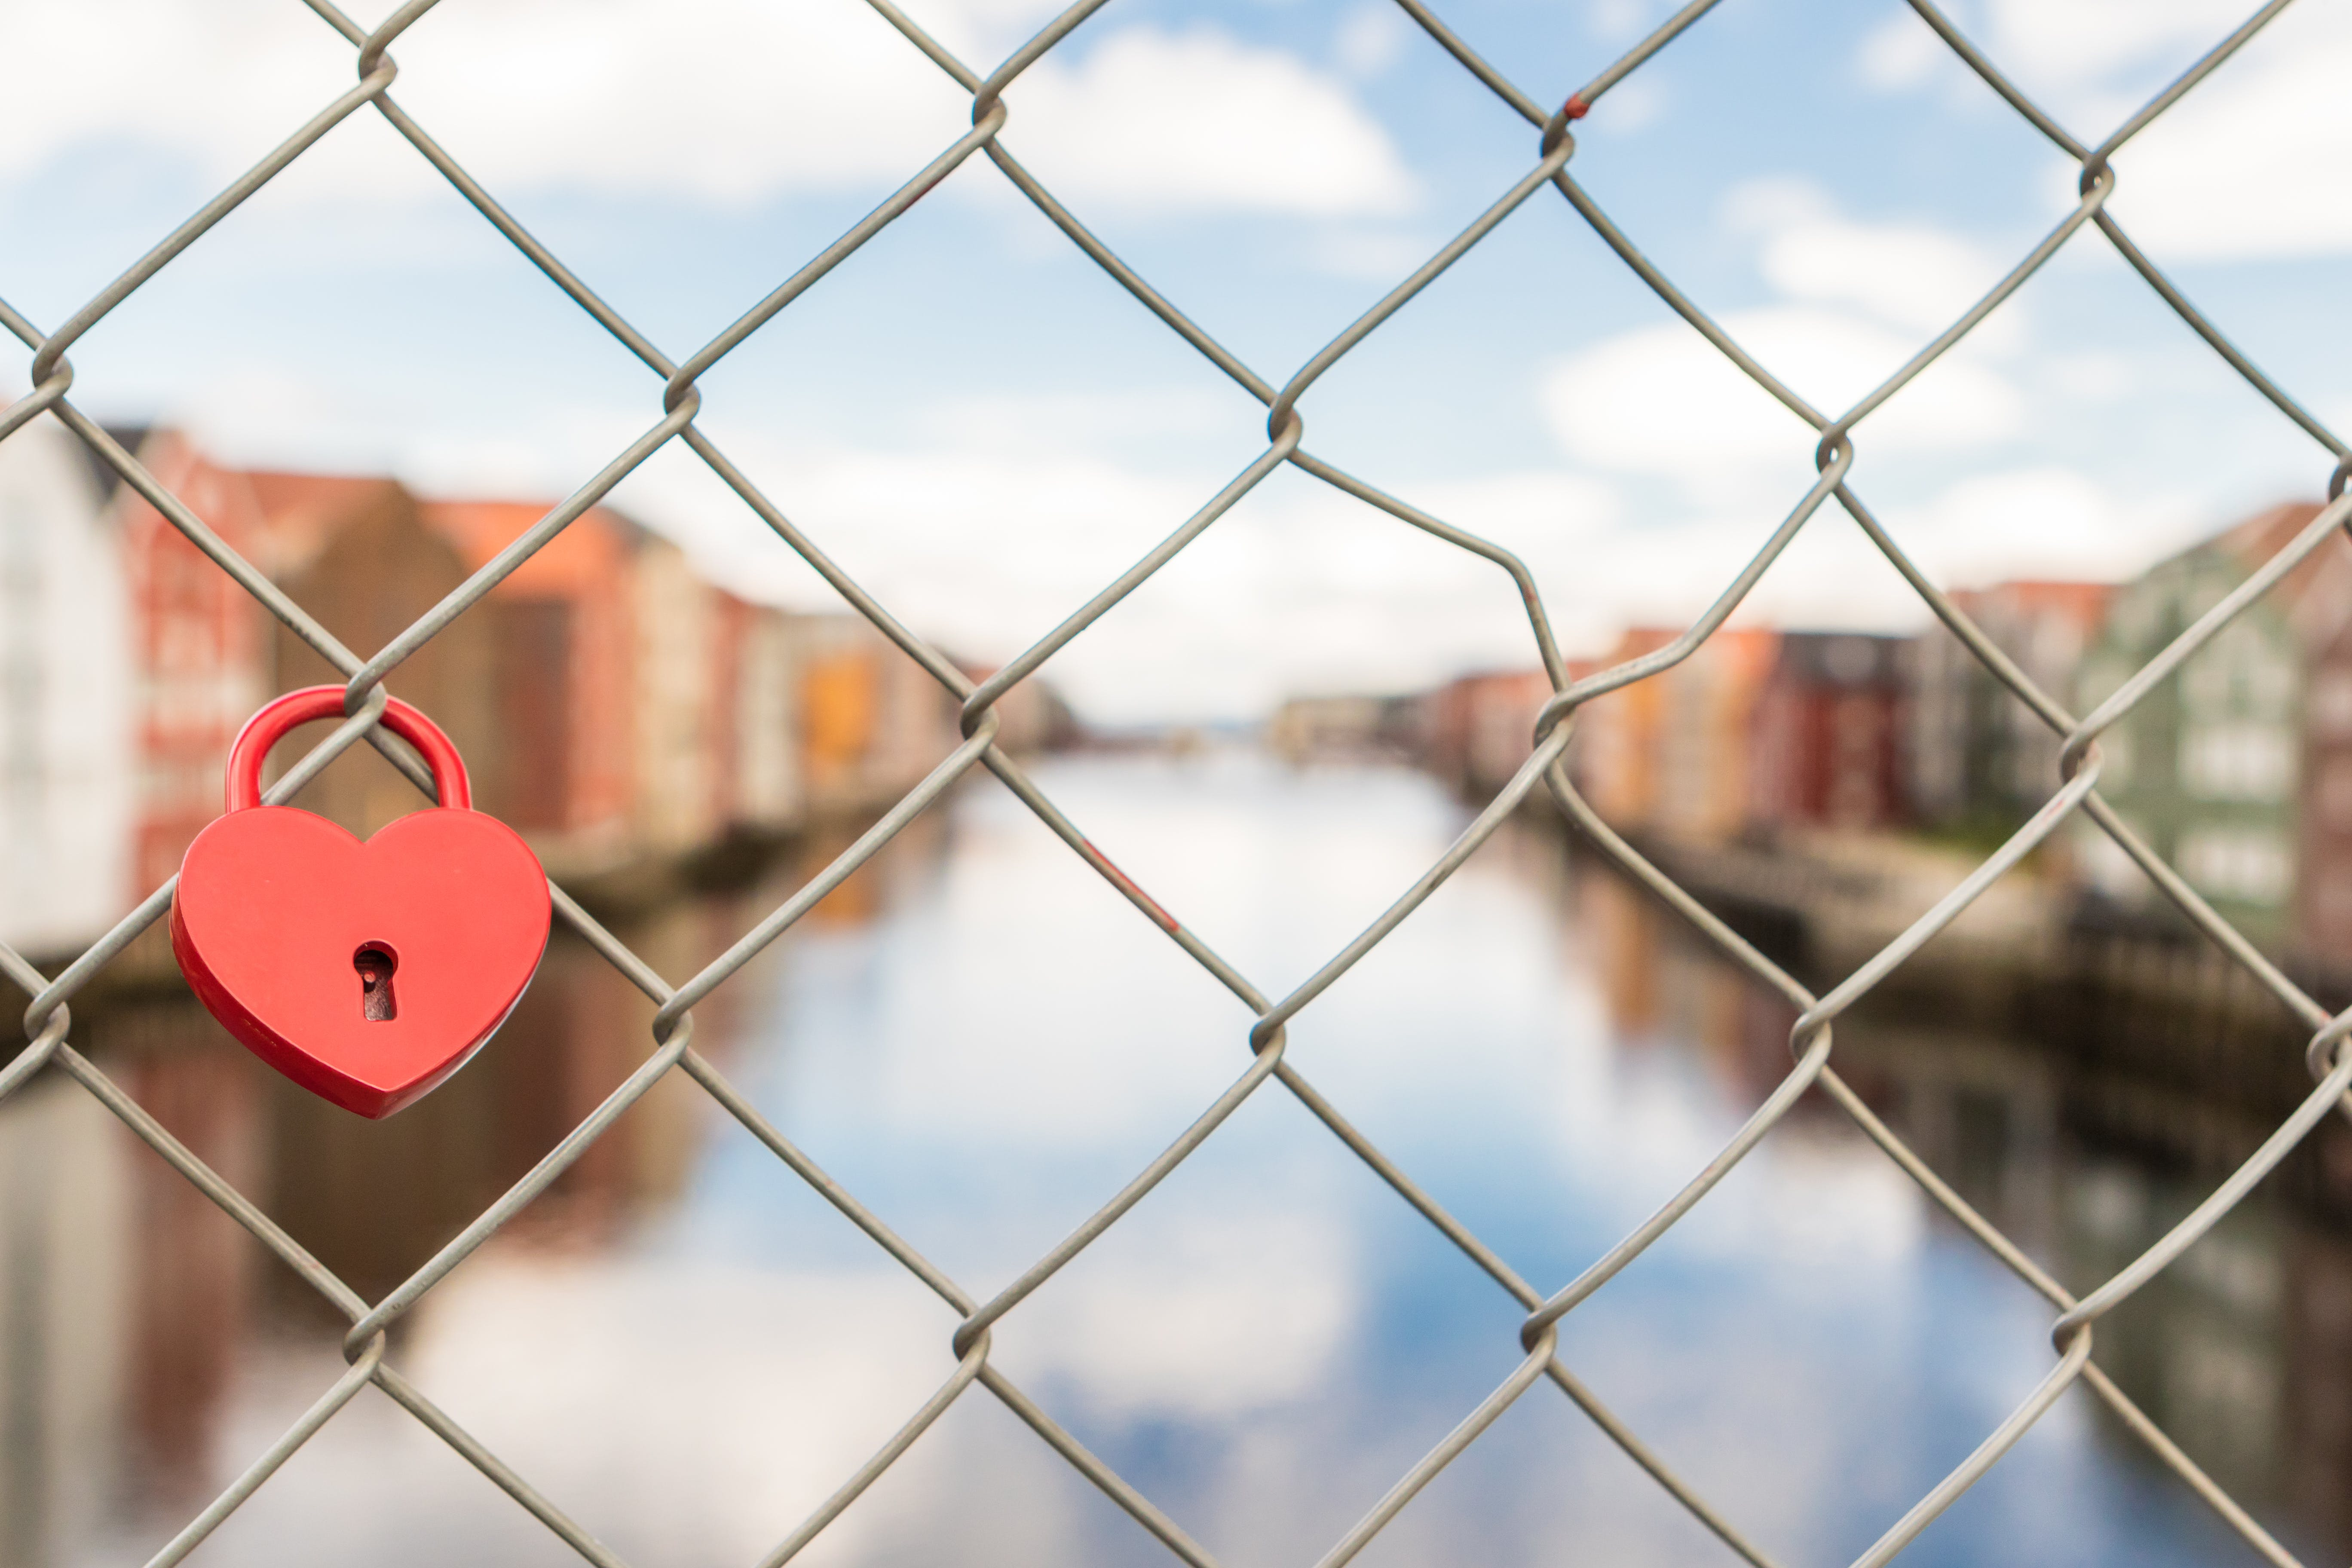 Free stock photo of heart, water, river, fence